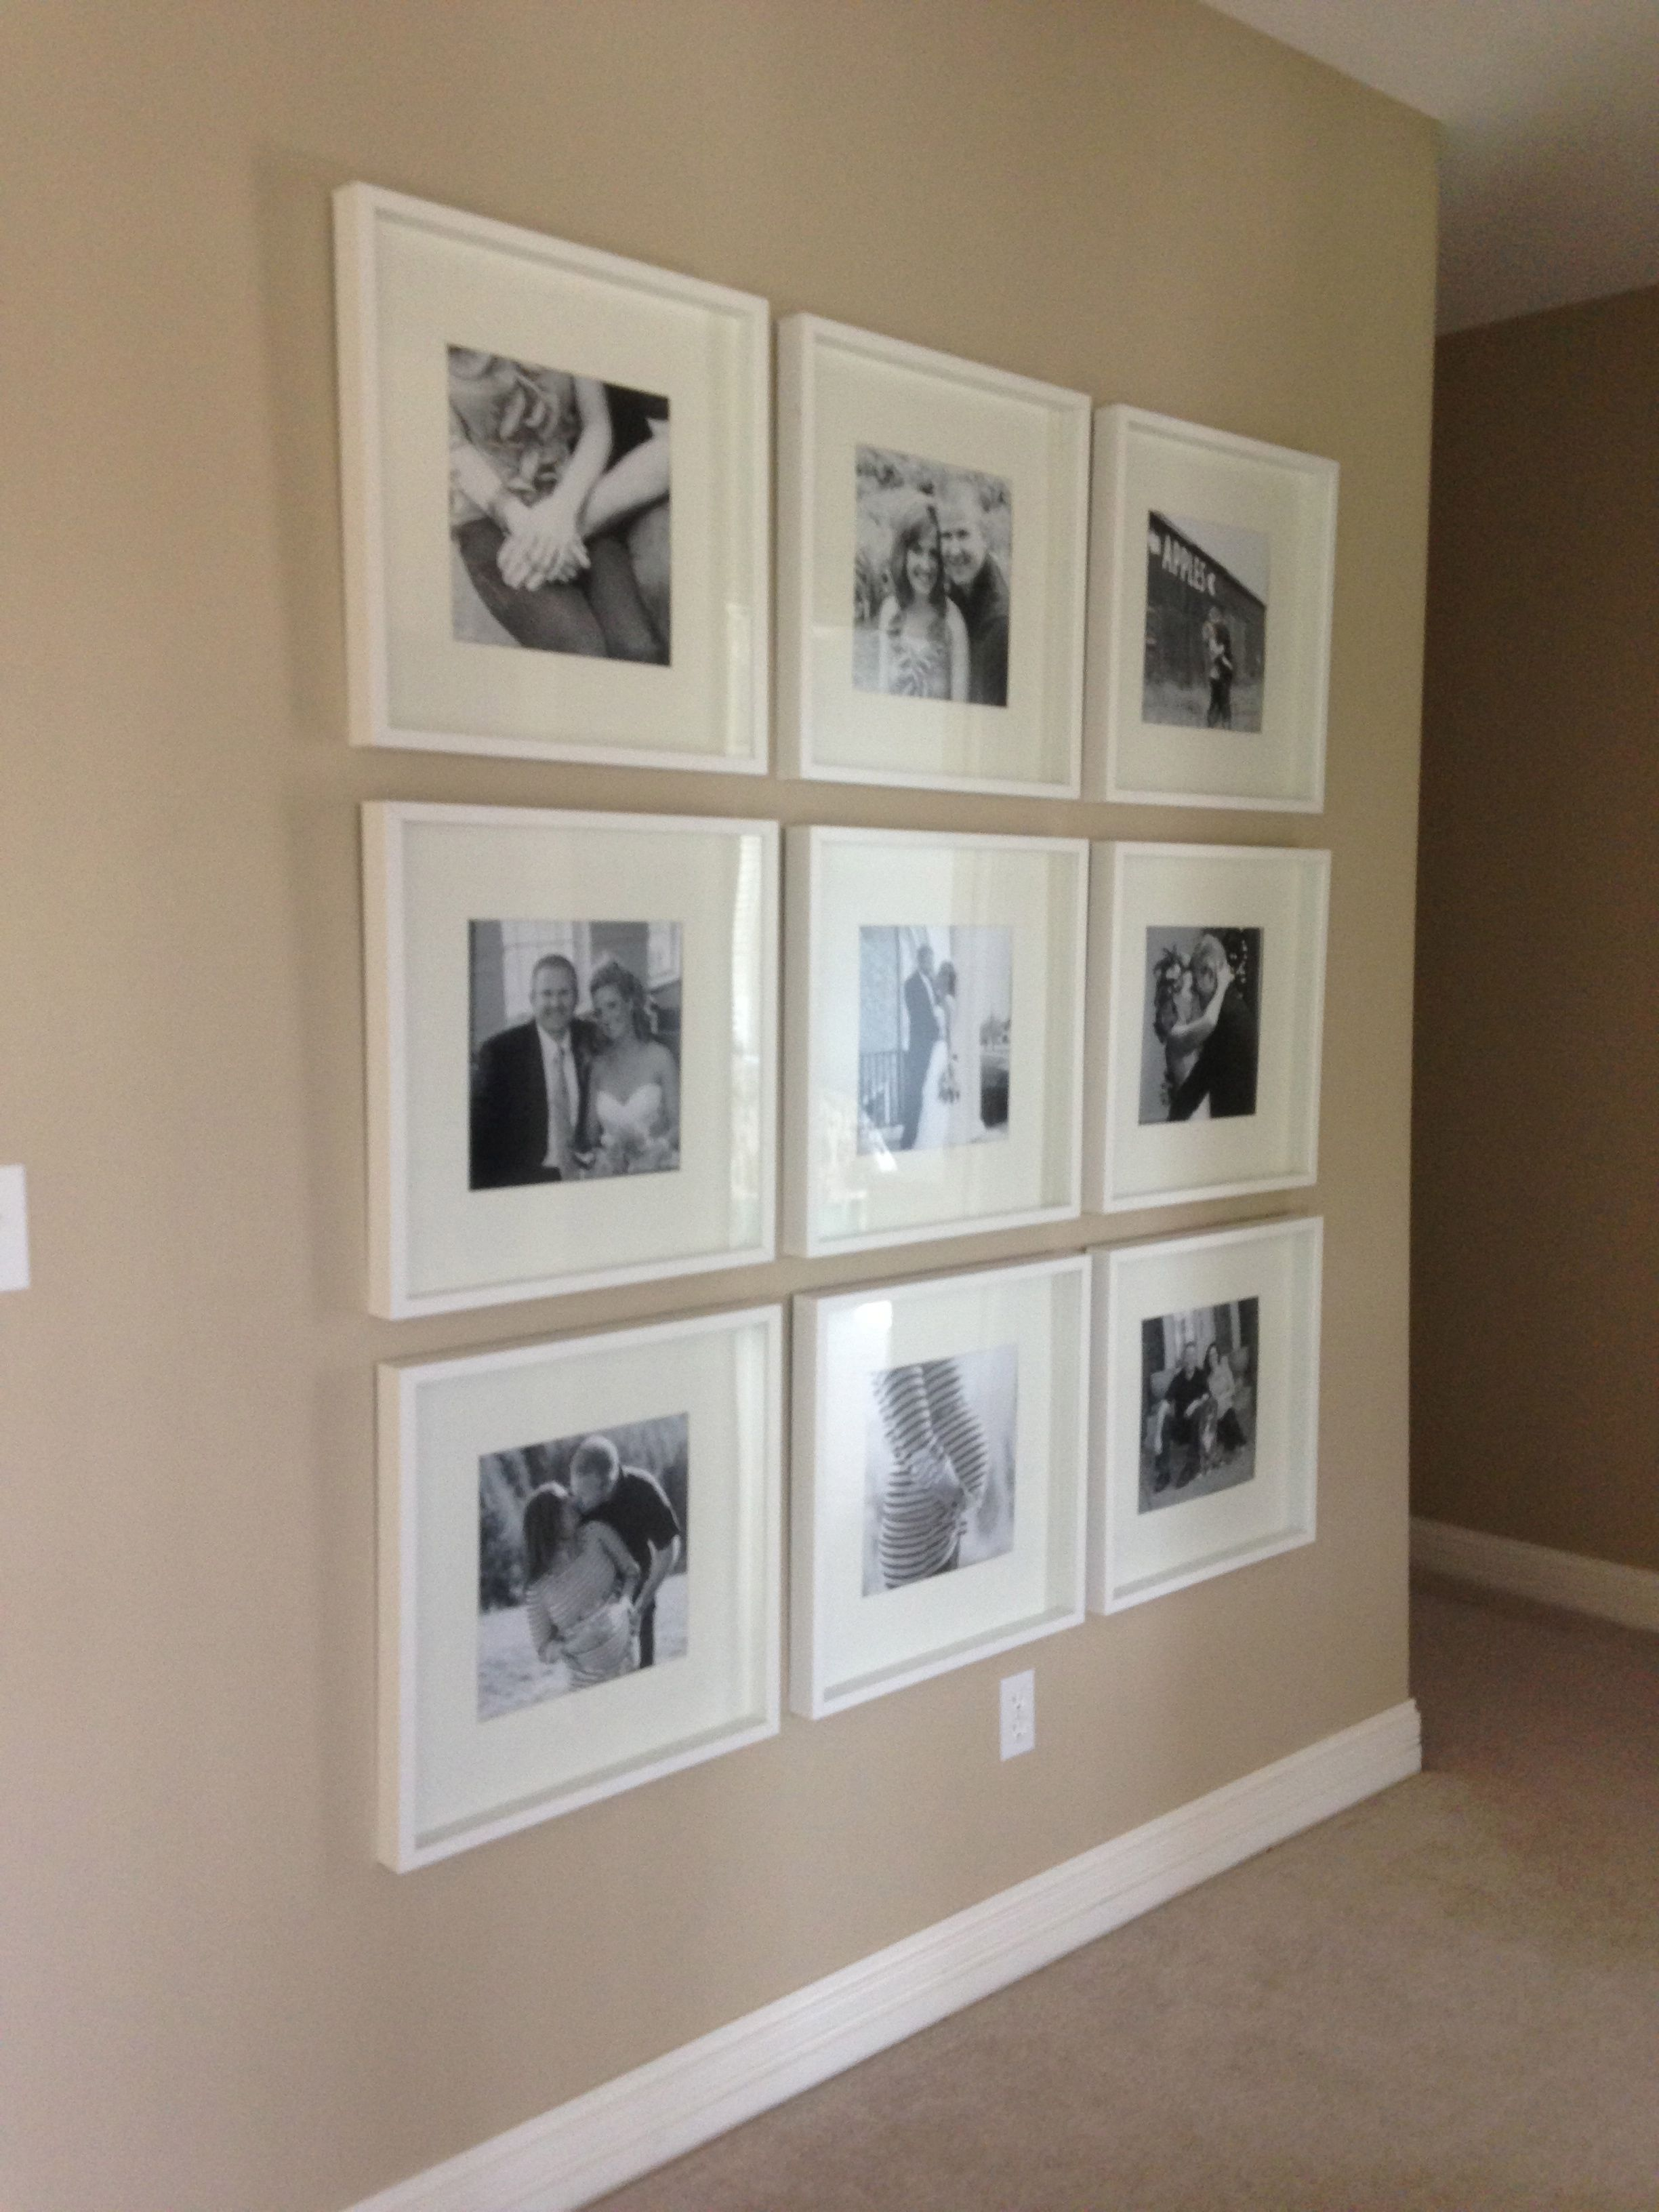 Ikea Box Frame 50 X 50 Black And White Photo Wall With Ikea Frames Chronological Order